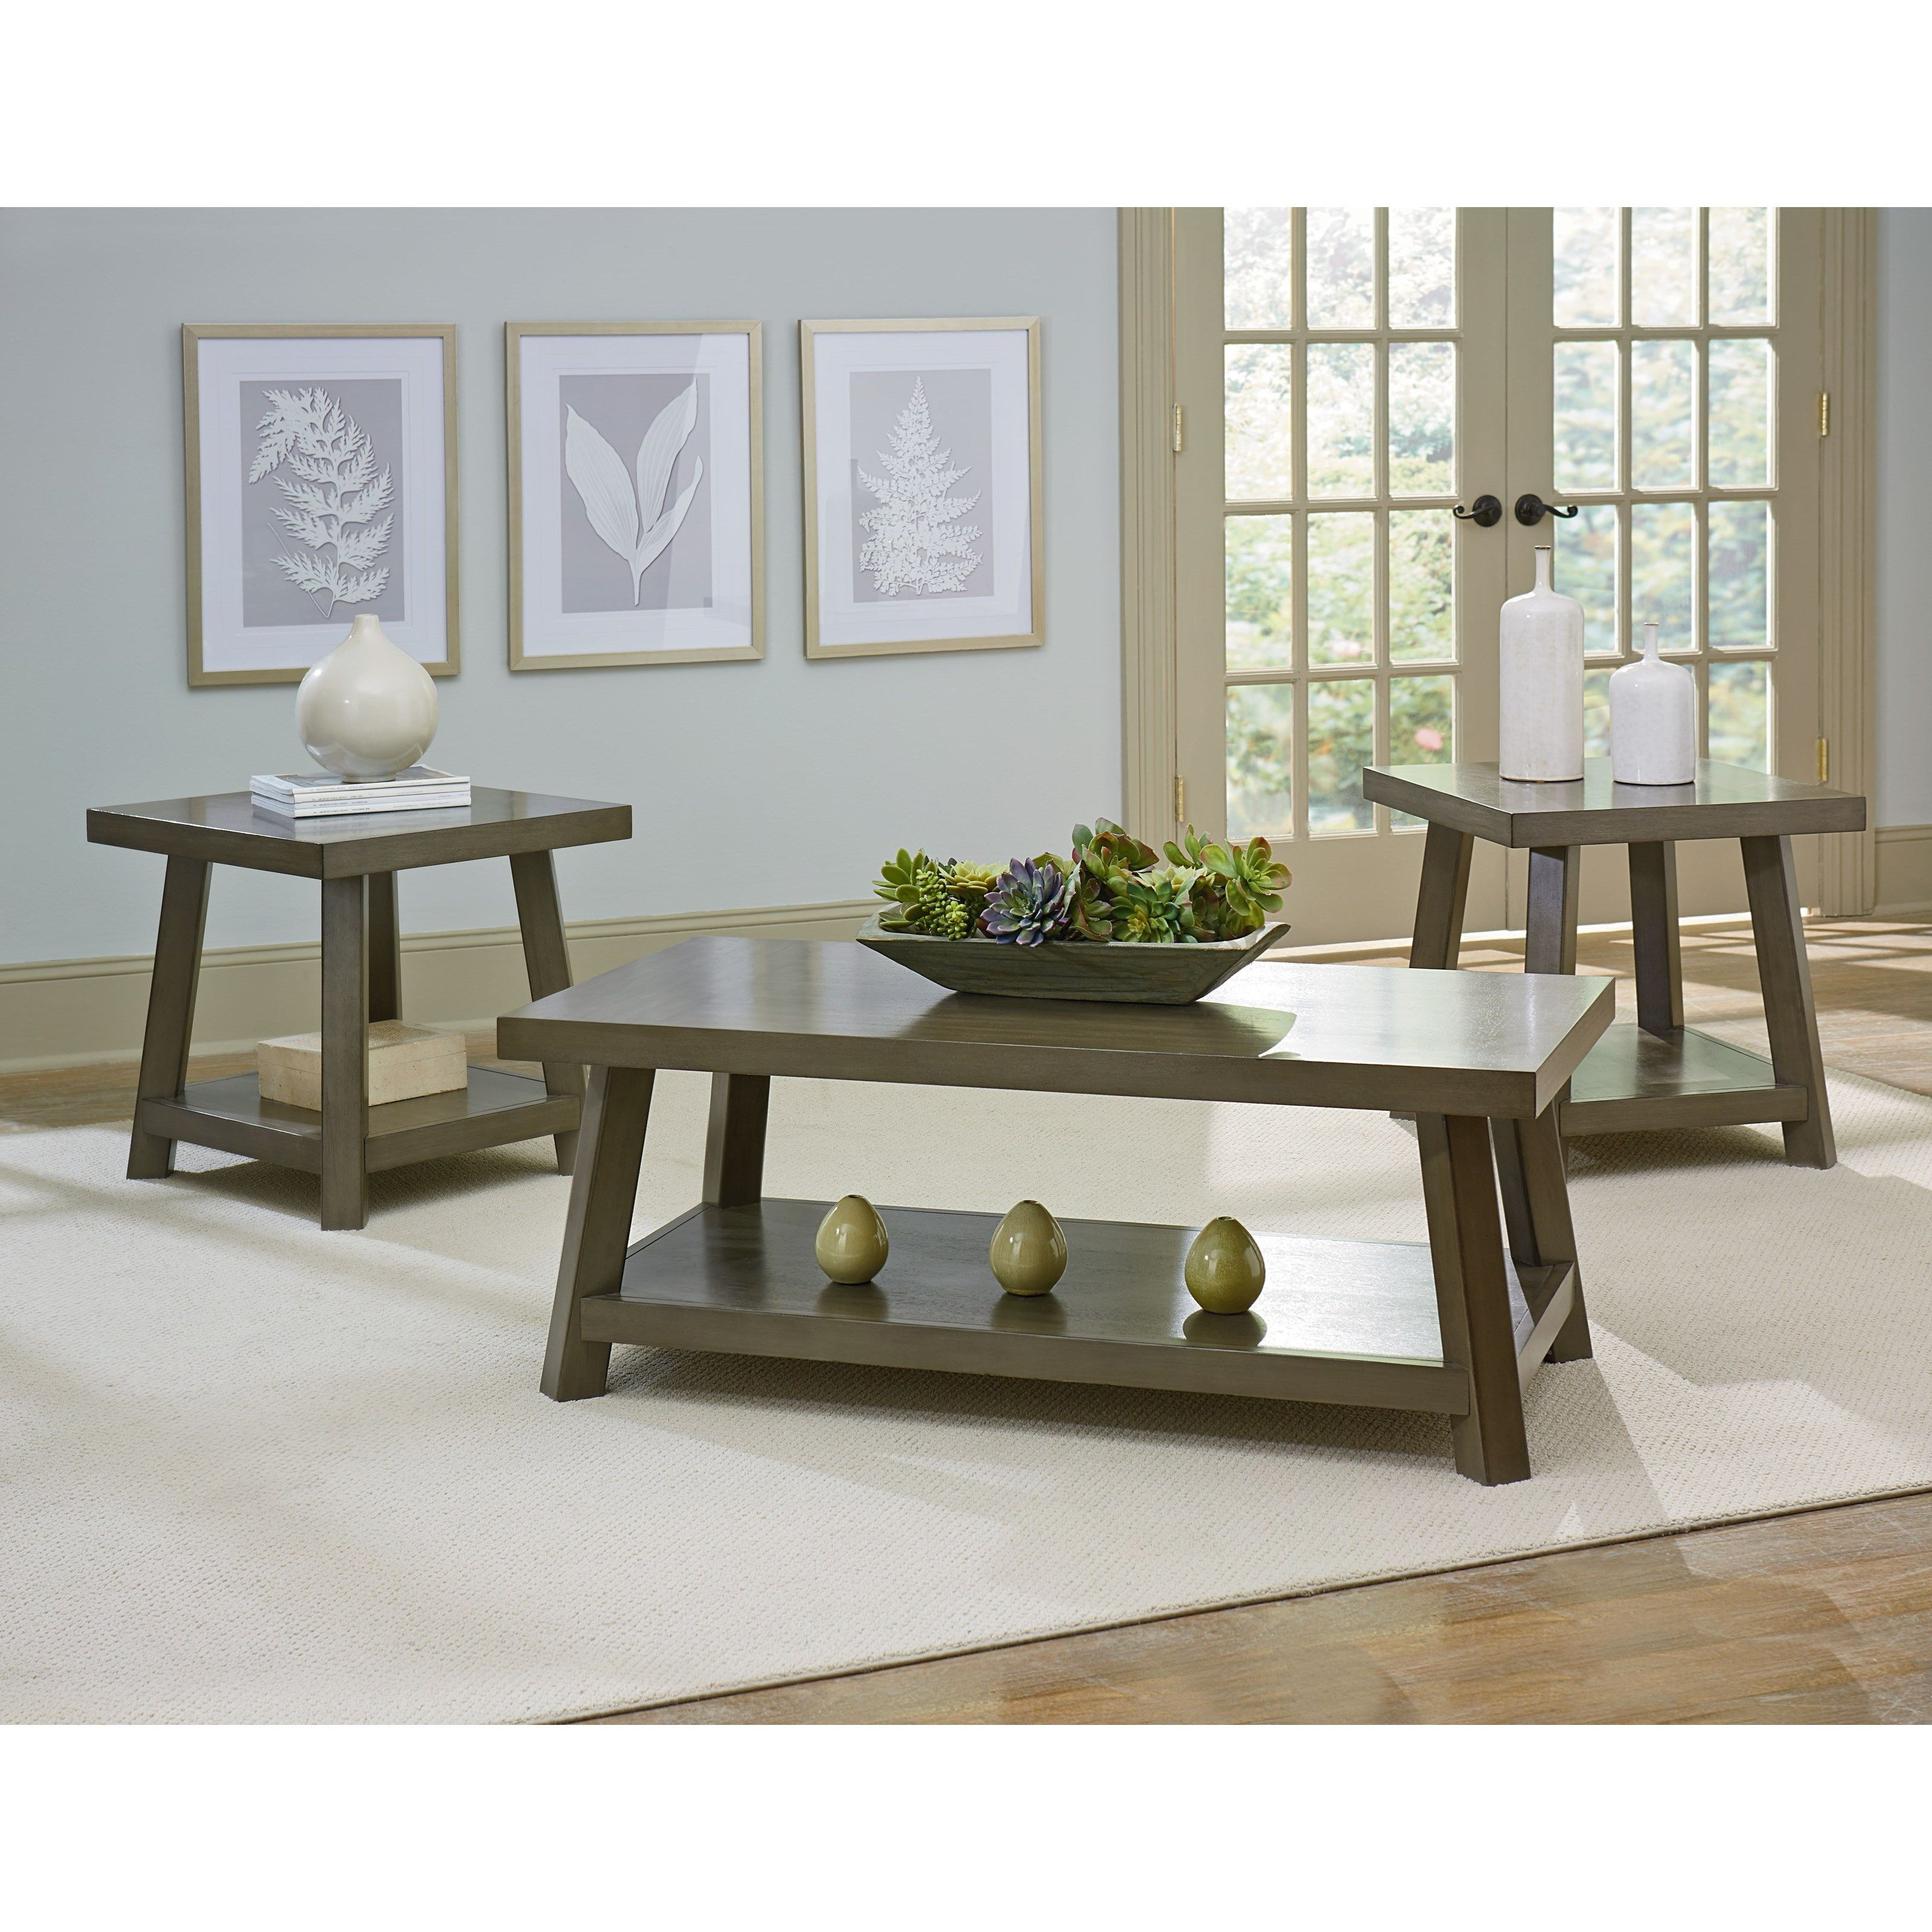 Best 3 Piece Coffee Table Set Image By Mindy Silence On Living 640 x 480